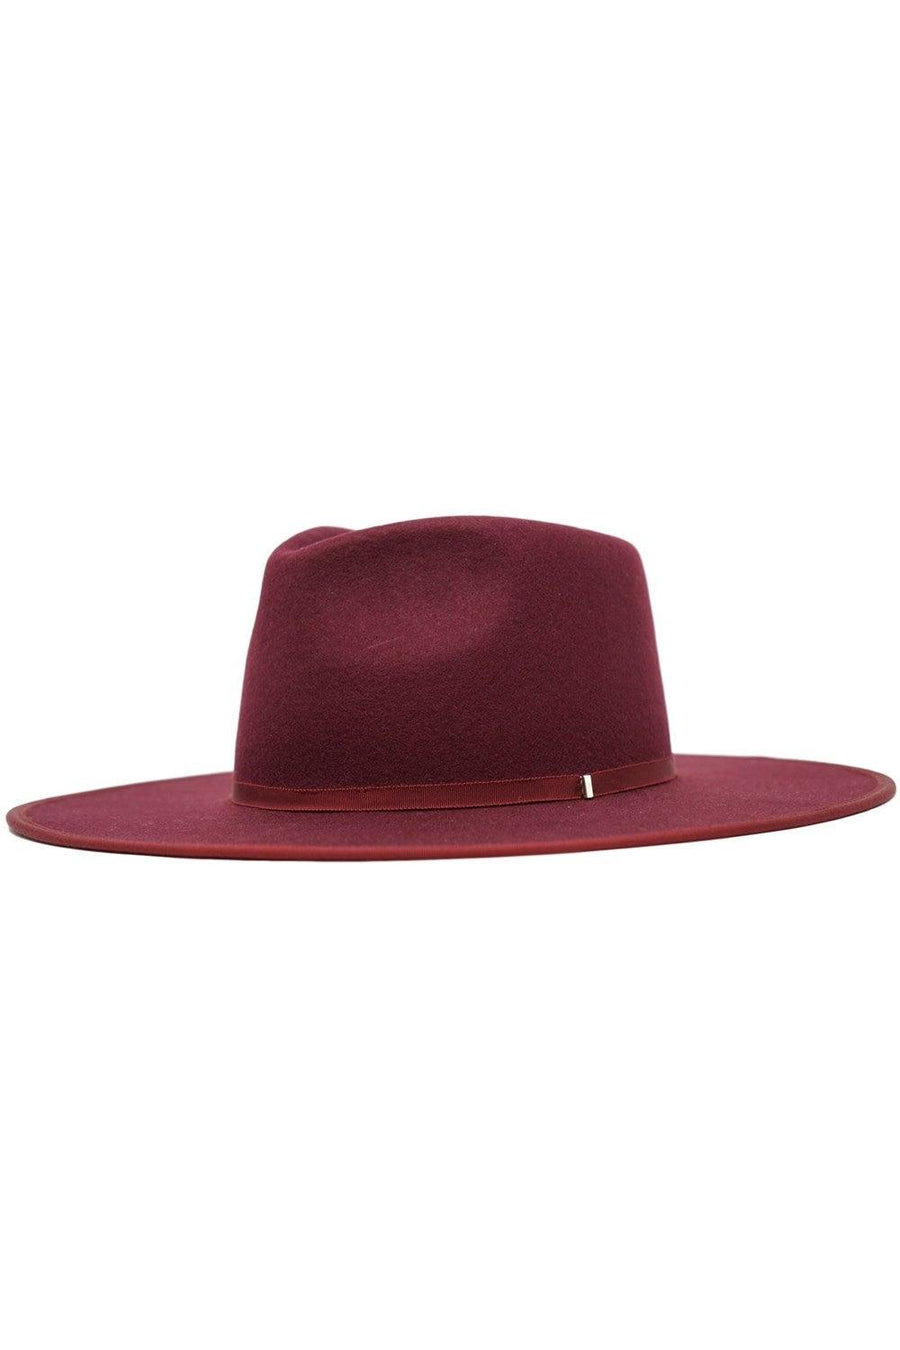 Burgundy | Michelle Hat (Pre-Order Estimated Ship 11/9)